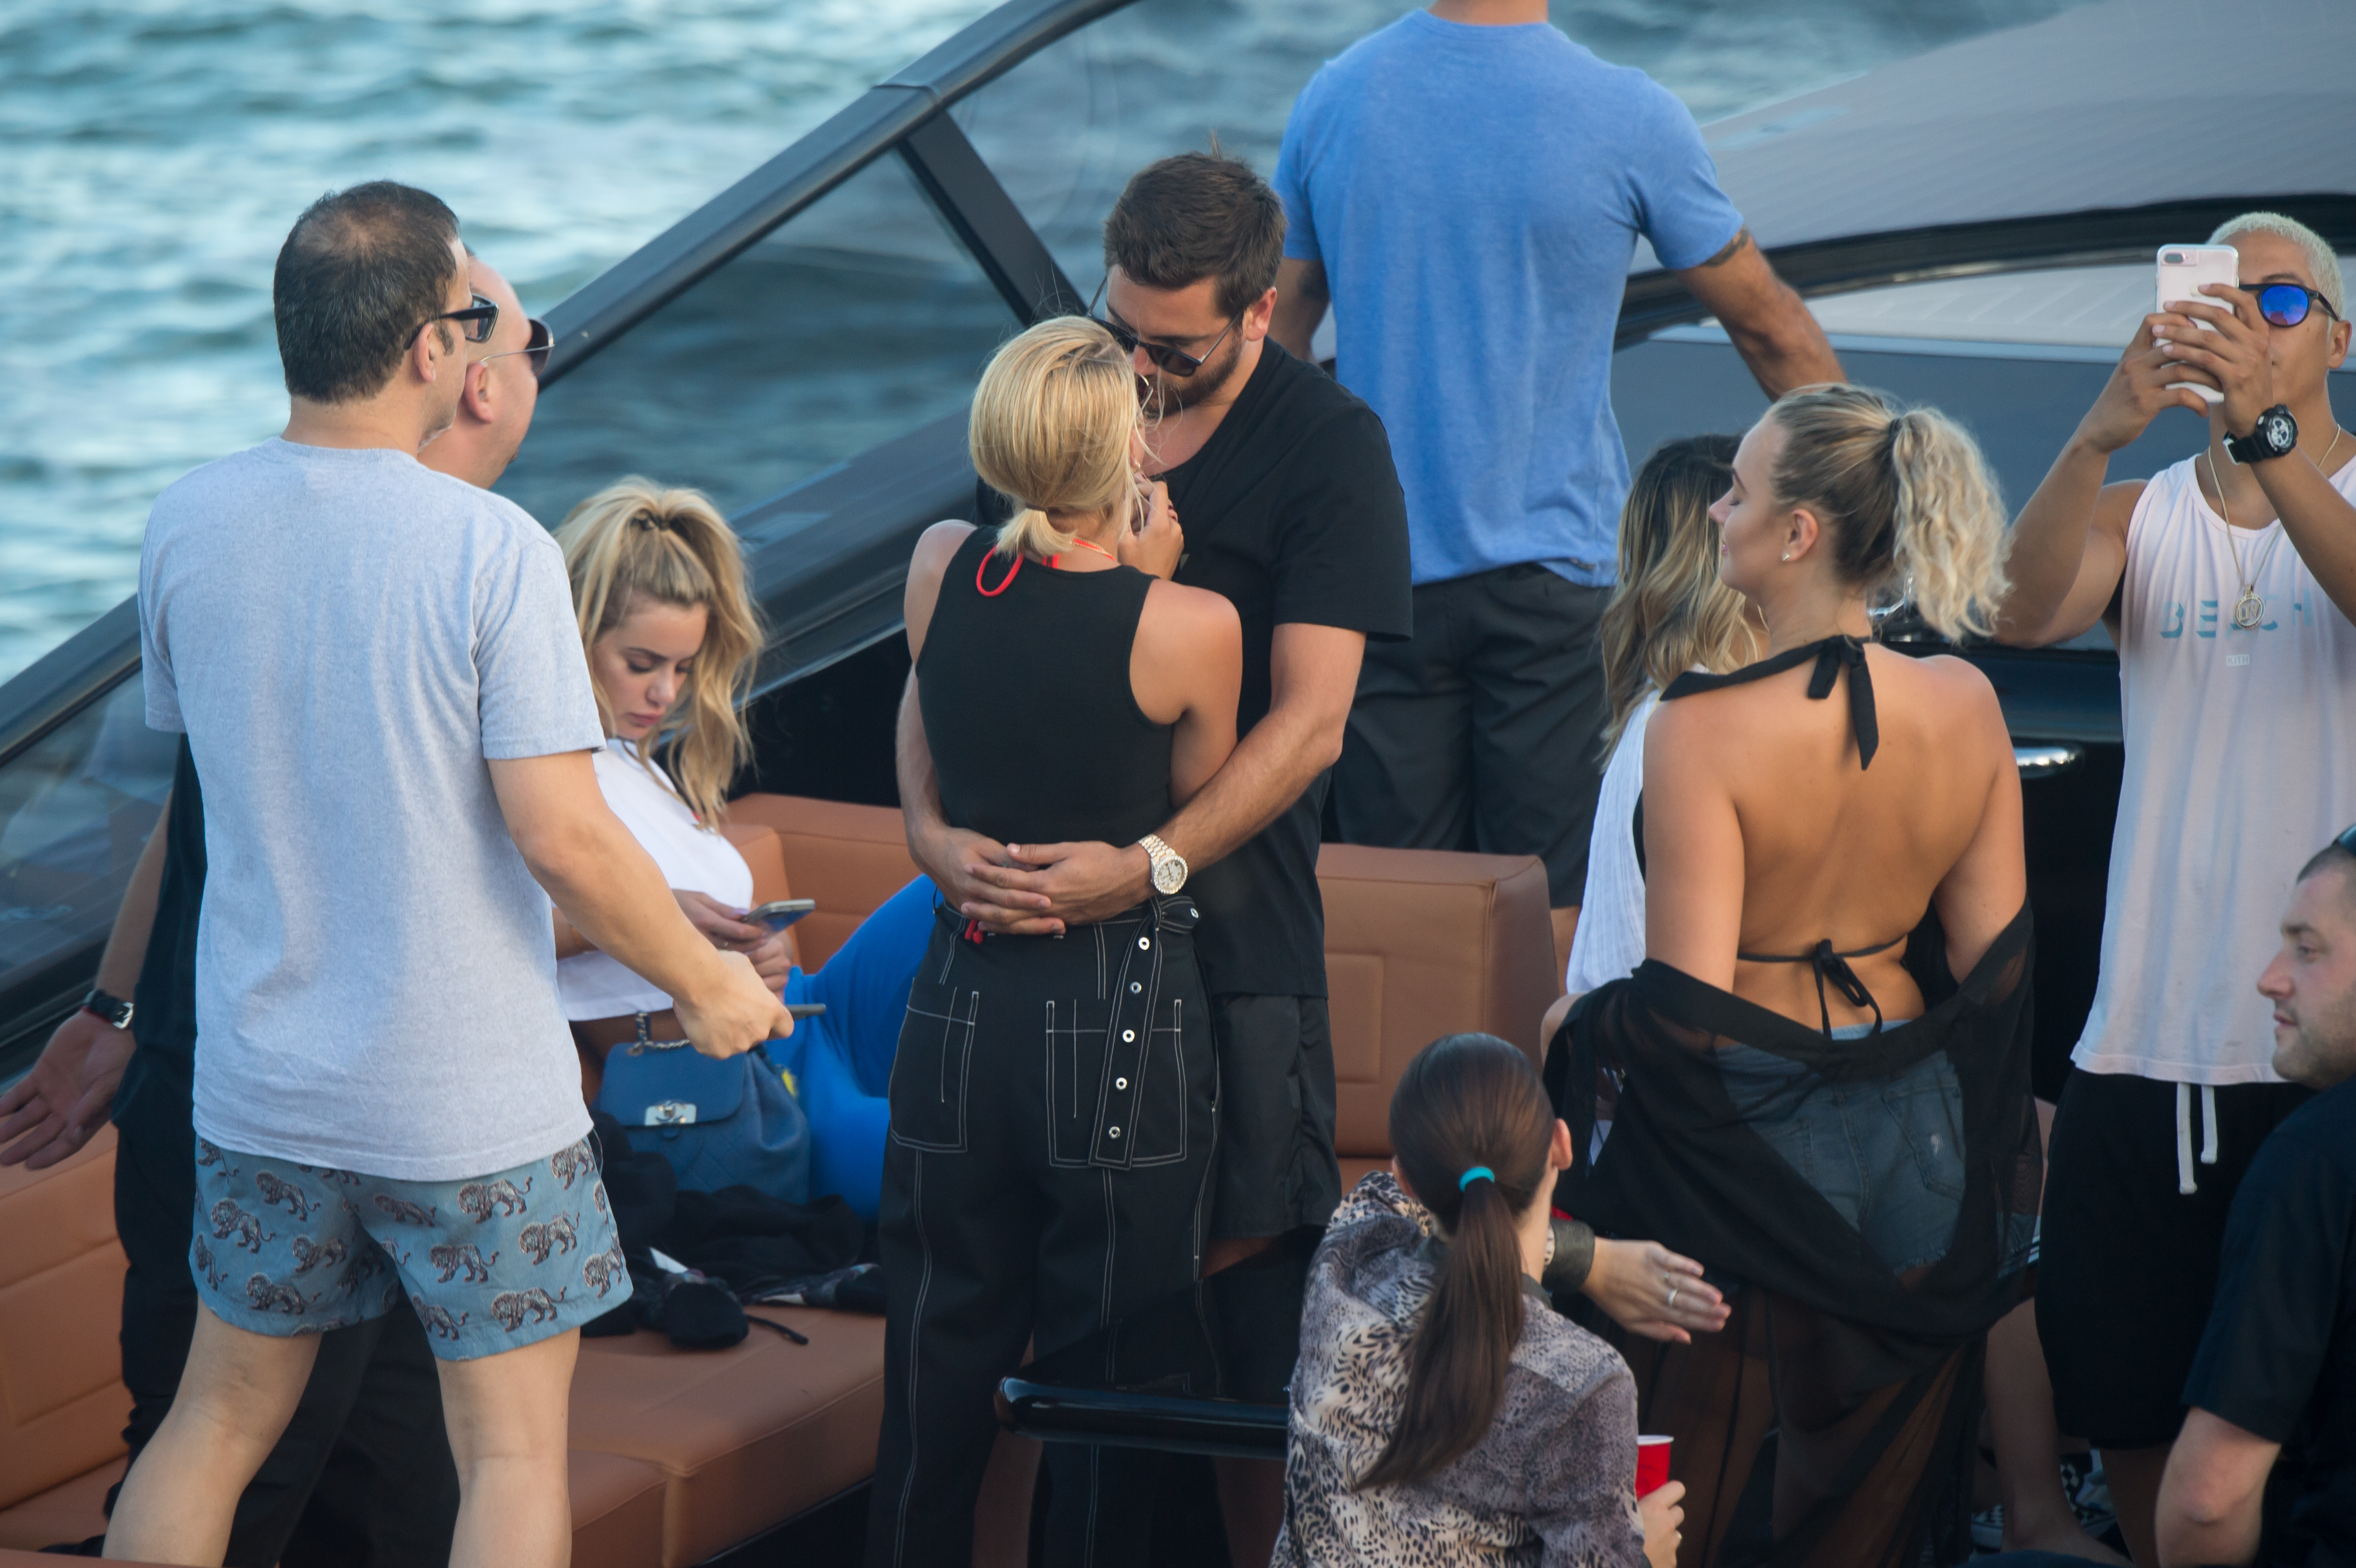 Sofia Richie and Scott Disick get up close during sunset boat tour through Miami. The newly couple were out on David Grutmans boat who owns the famous LIV club in Miami Beach  <P> Pictured: scott disick, sofia richie <B>Ref: SPL1586675  230917  </B><BR/> Picture by: AM/Splashnews<BR/> </P><P> <B>Splash News and Pictures</B><BR/> Los Angeles:310-821-2666<BR/> New York:212-619-2666<BR/> London:870-934-2666<BR/> <span id=